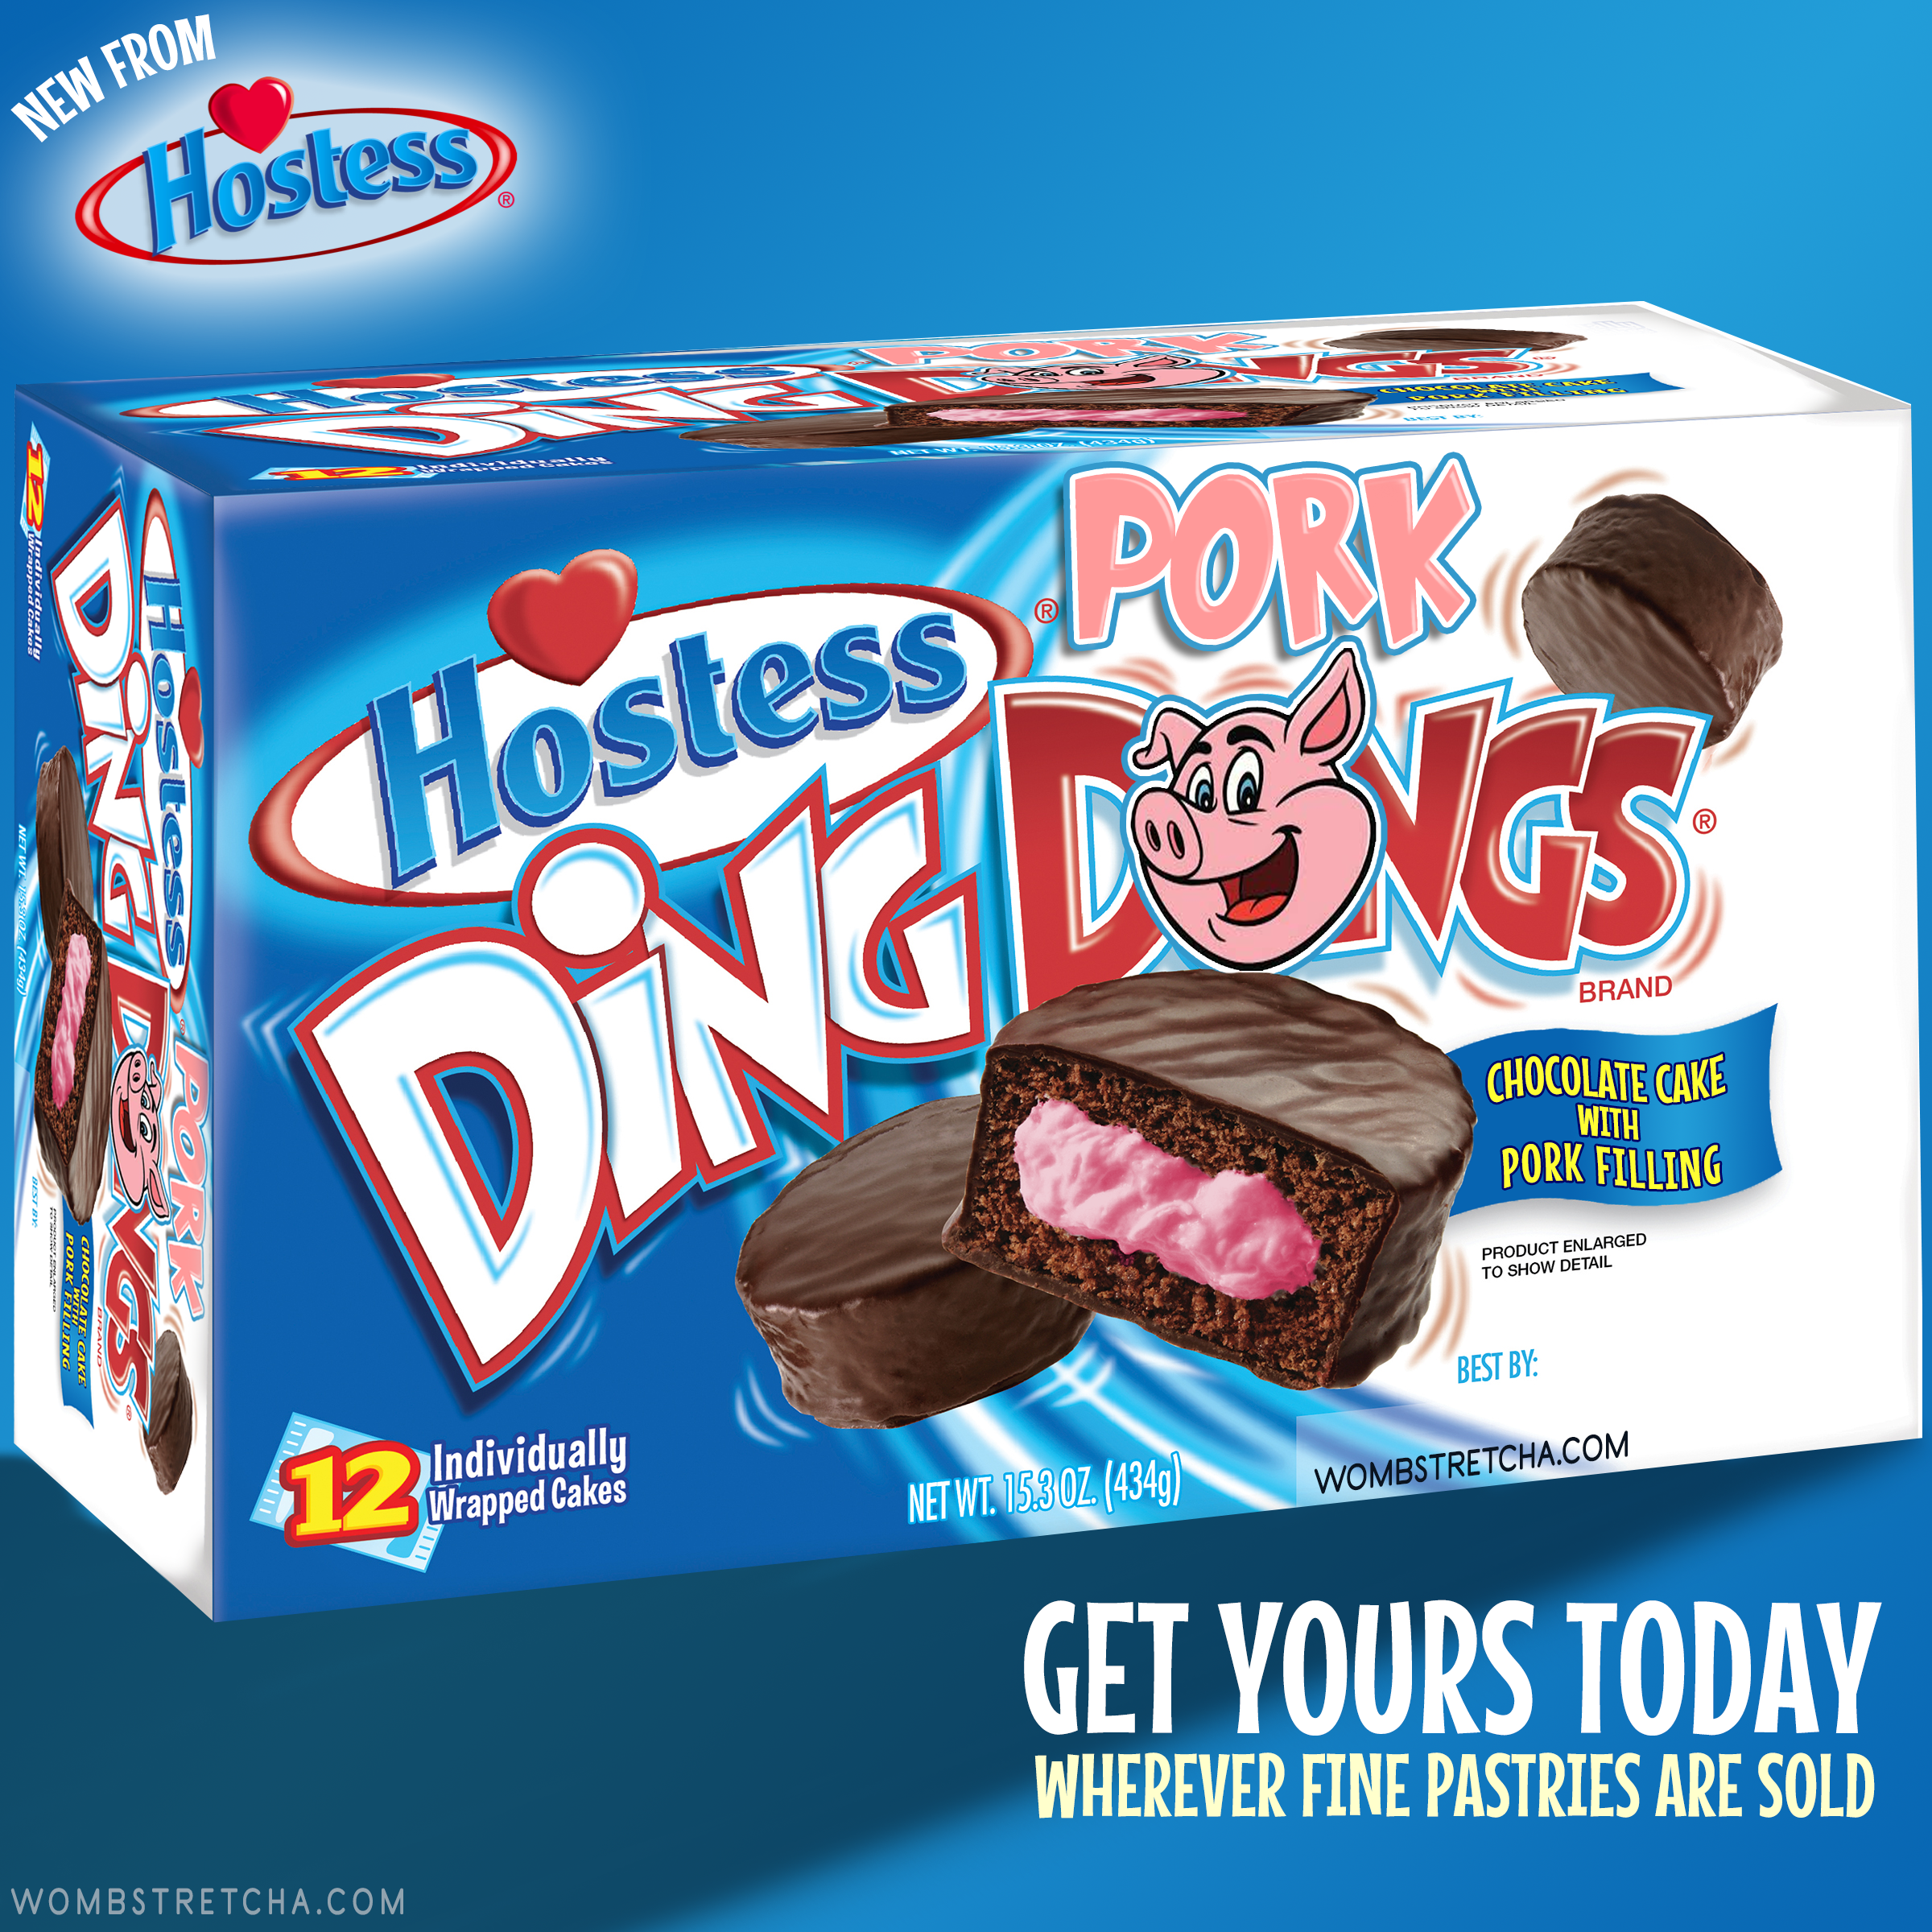 New from Hostess!